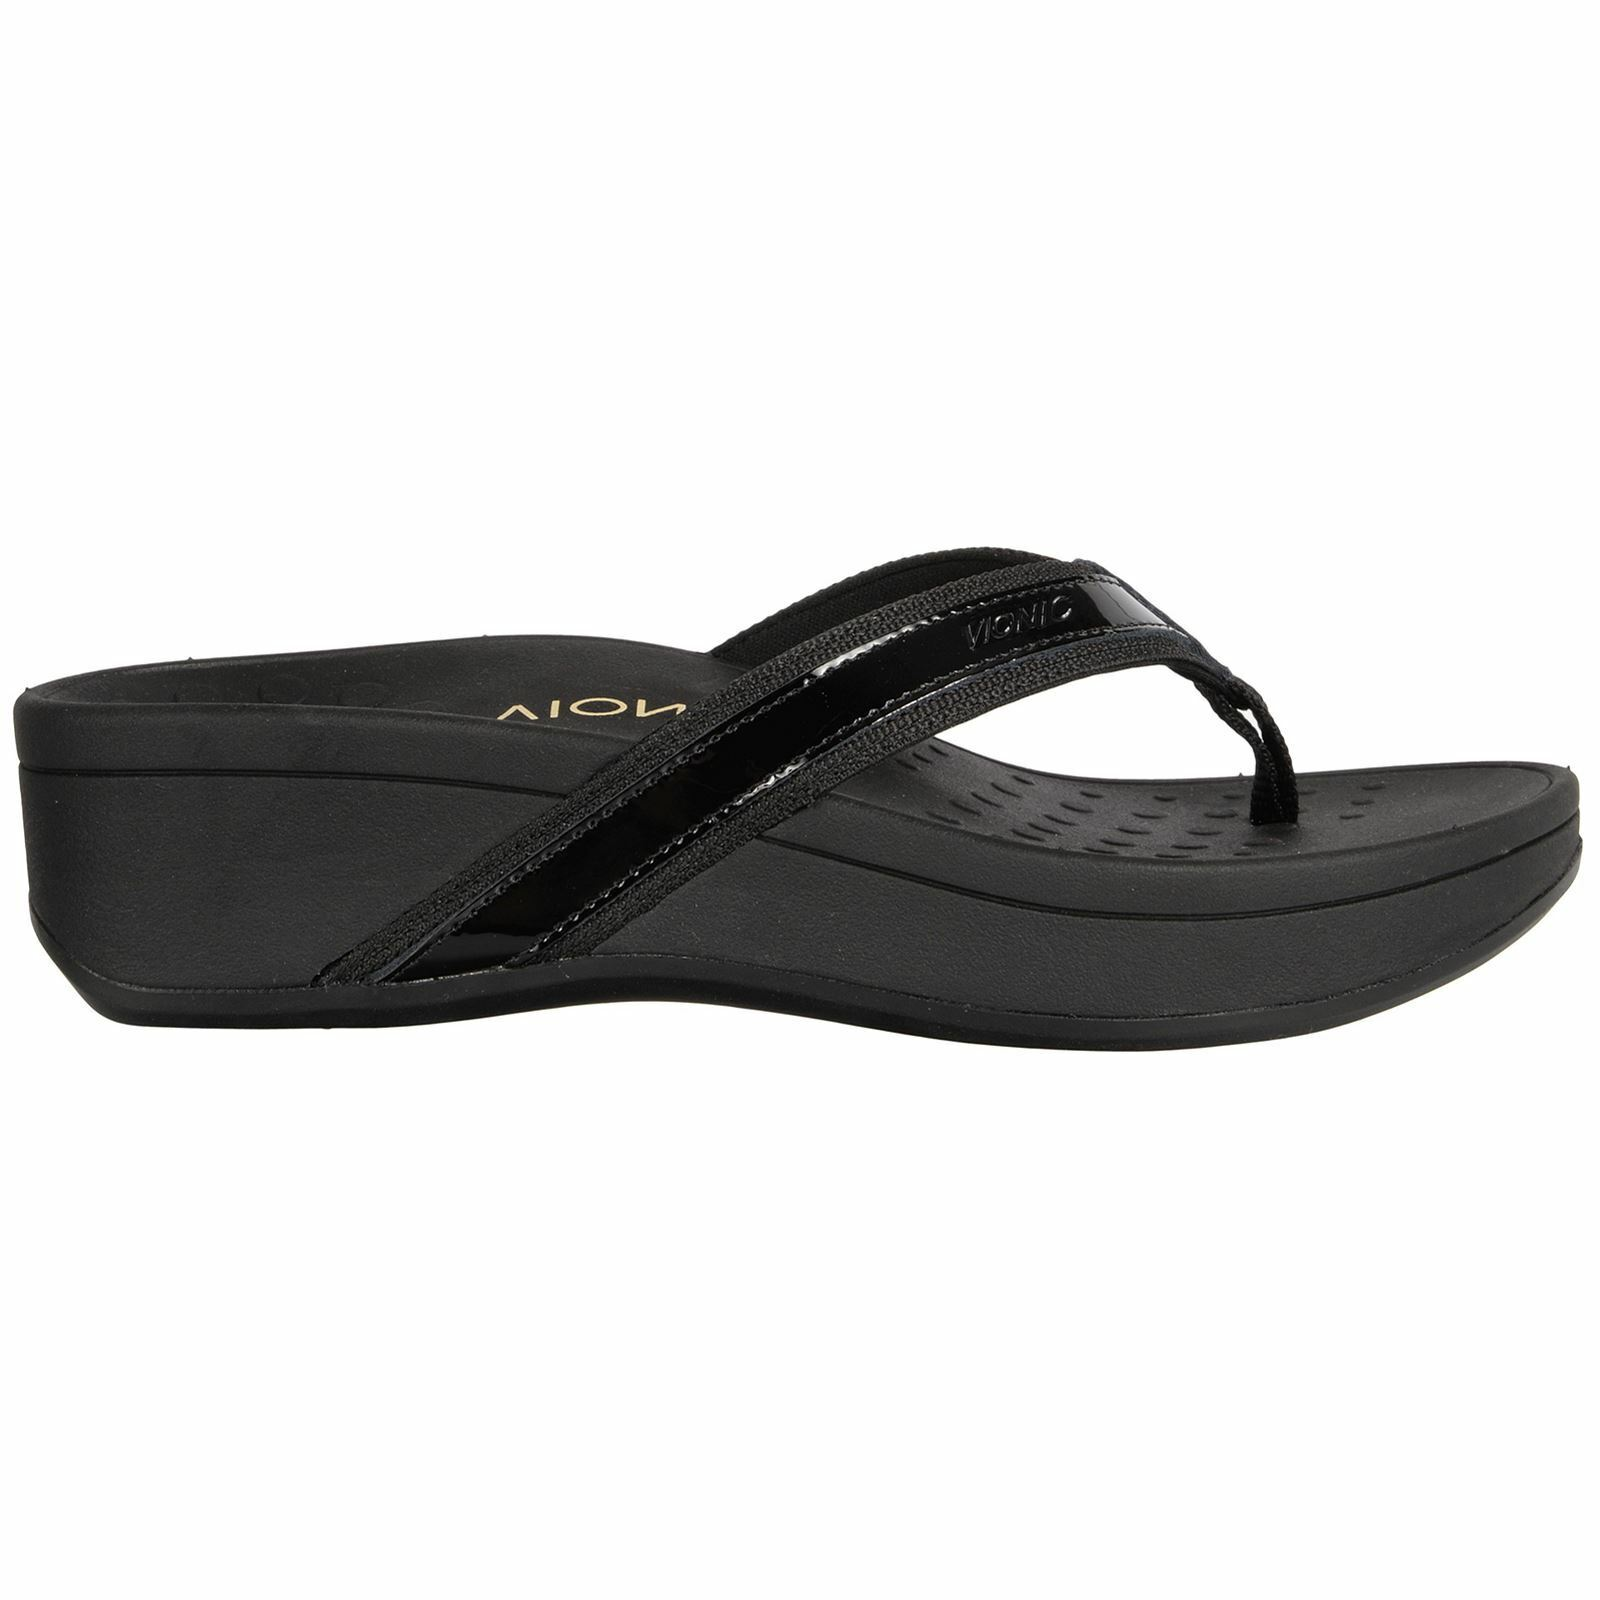 Vionic 380 hightide Pacific nero donna nero sandals all Dimensione